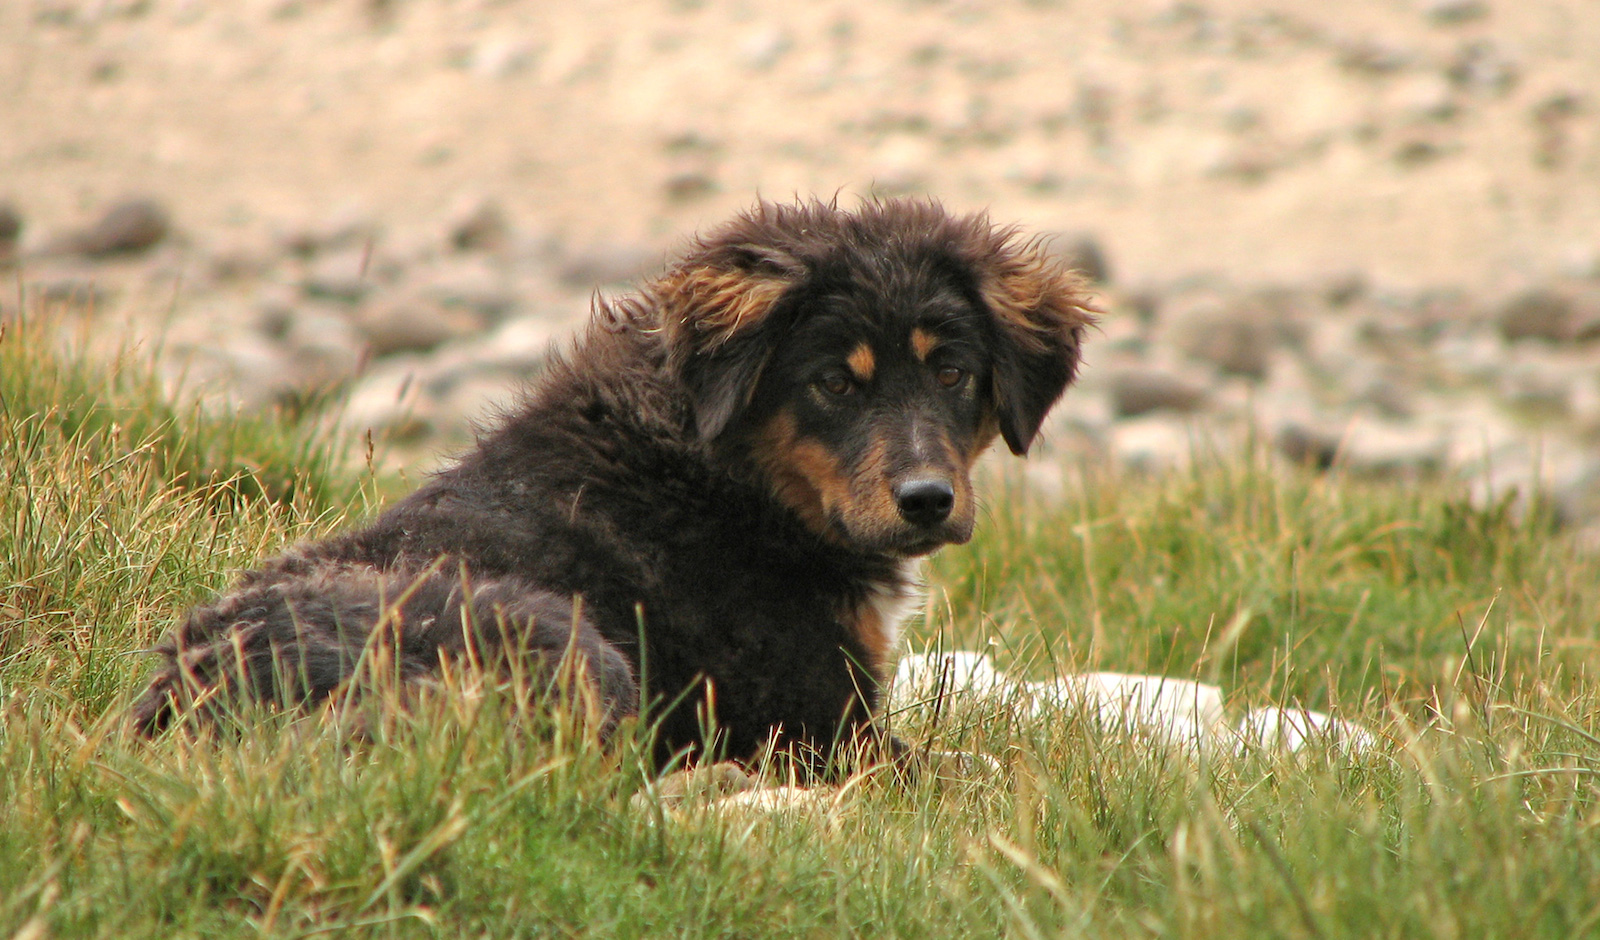 What to Do if You Find a Stray or Lost Dog